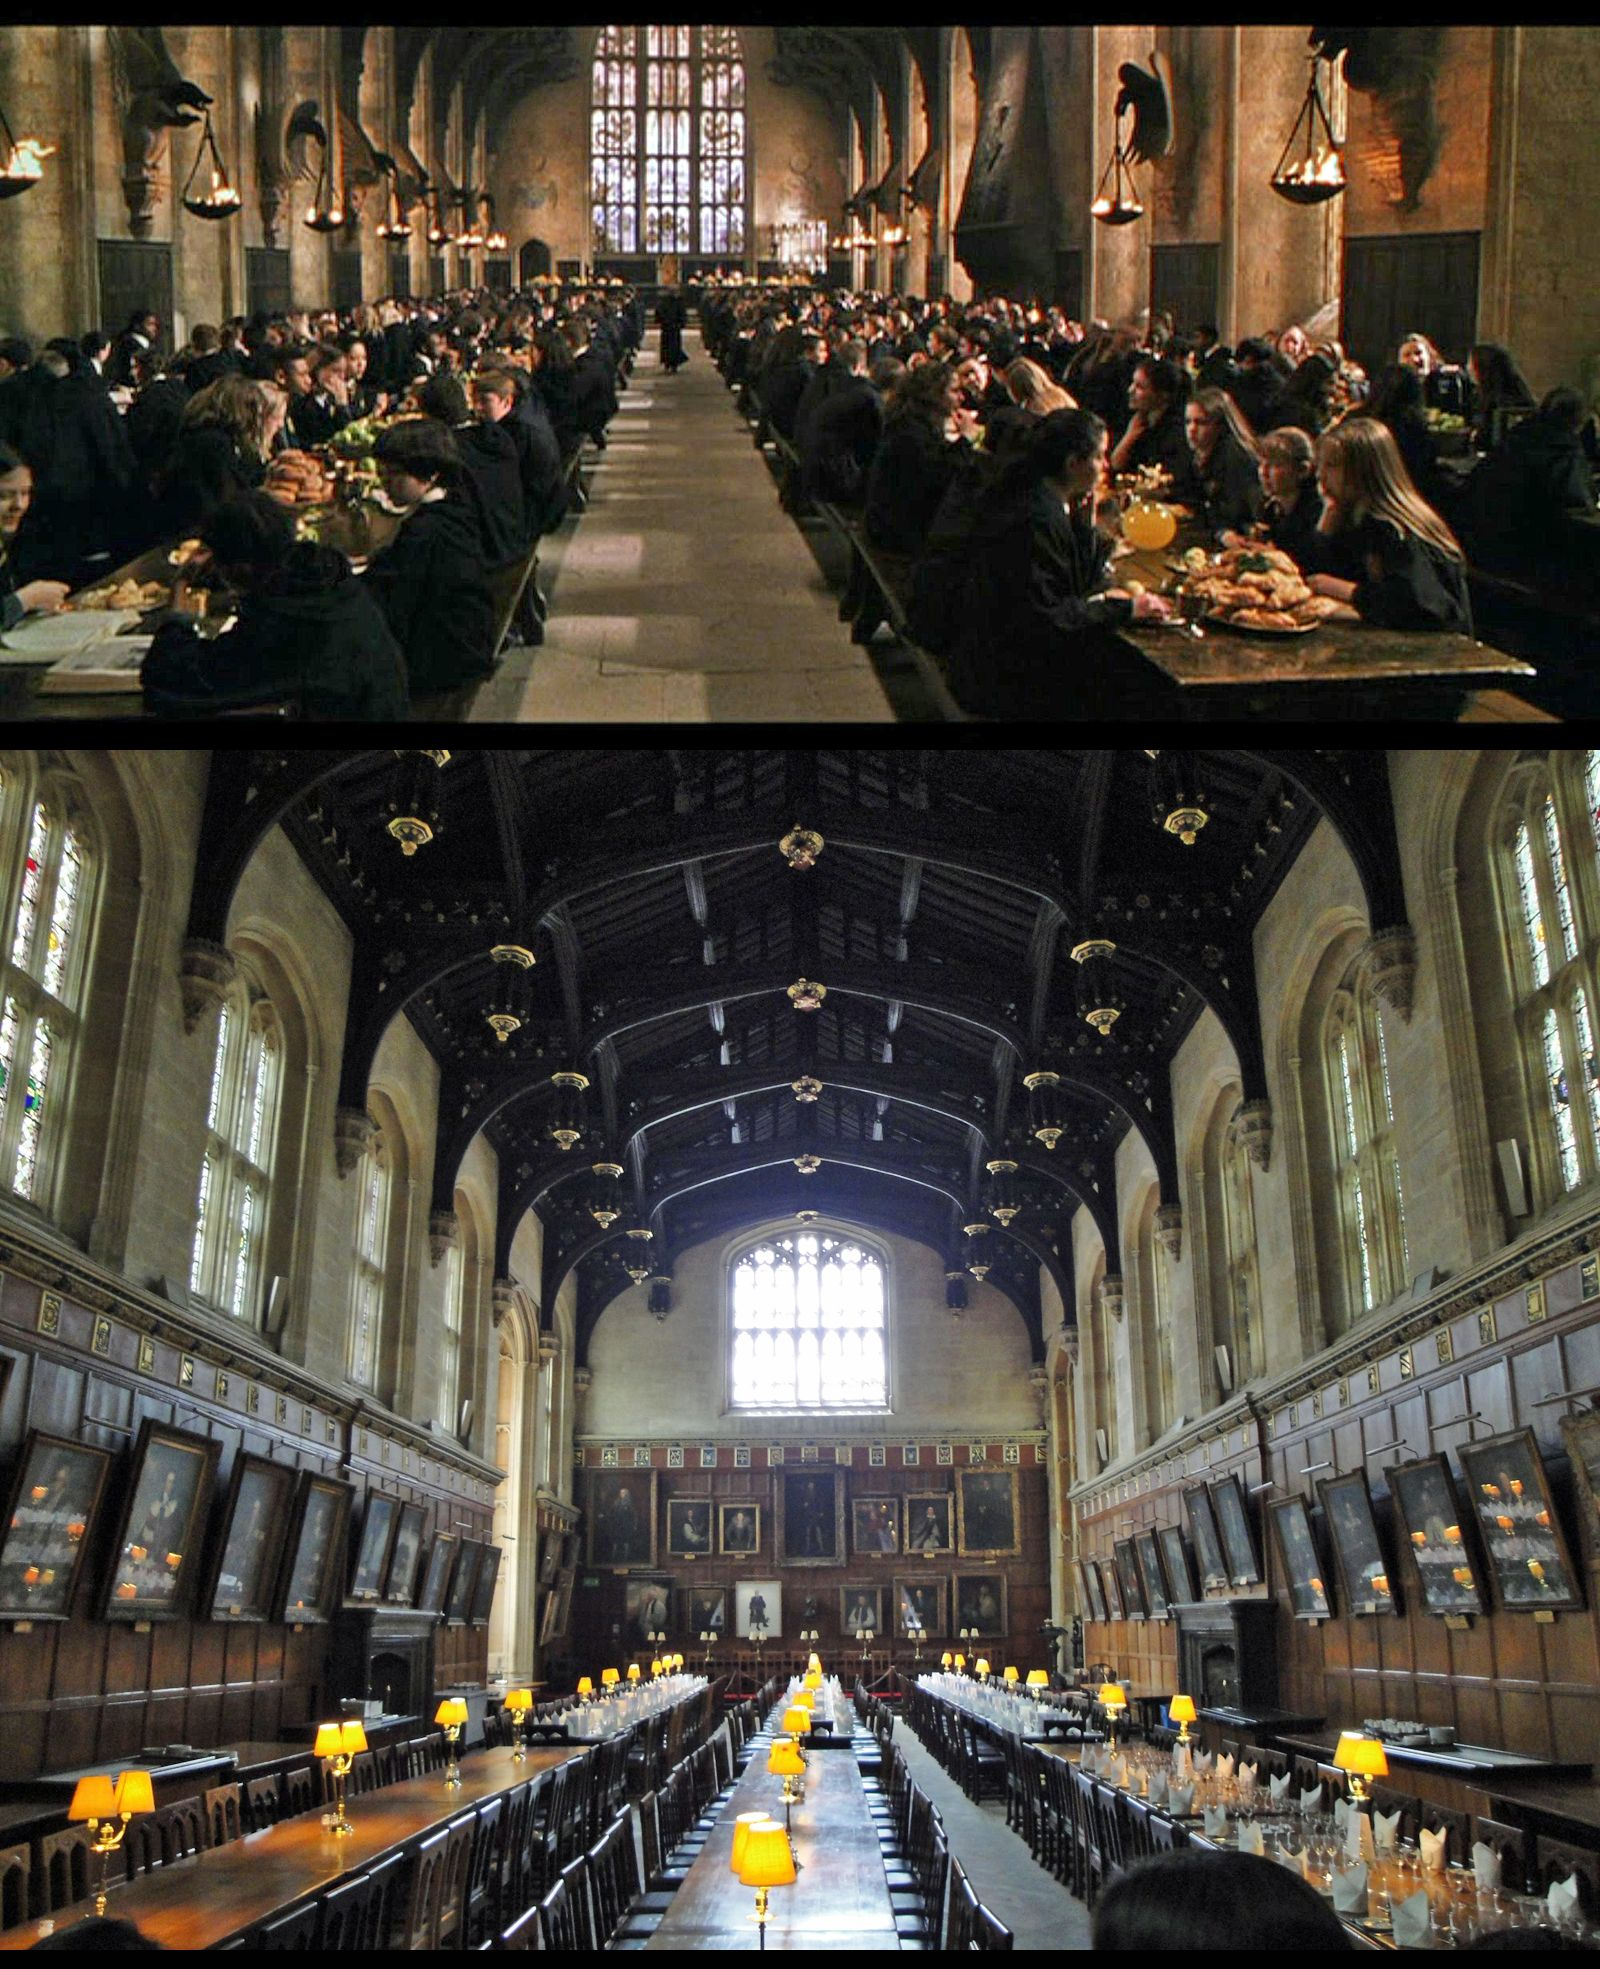 The Hogwarts Great Hall Set Design Seen In All Harry Potter Movies